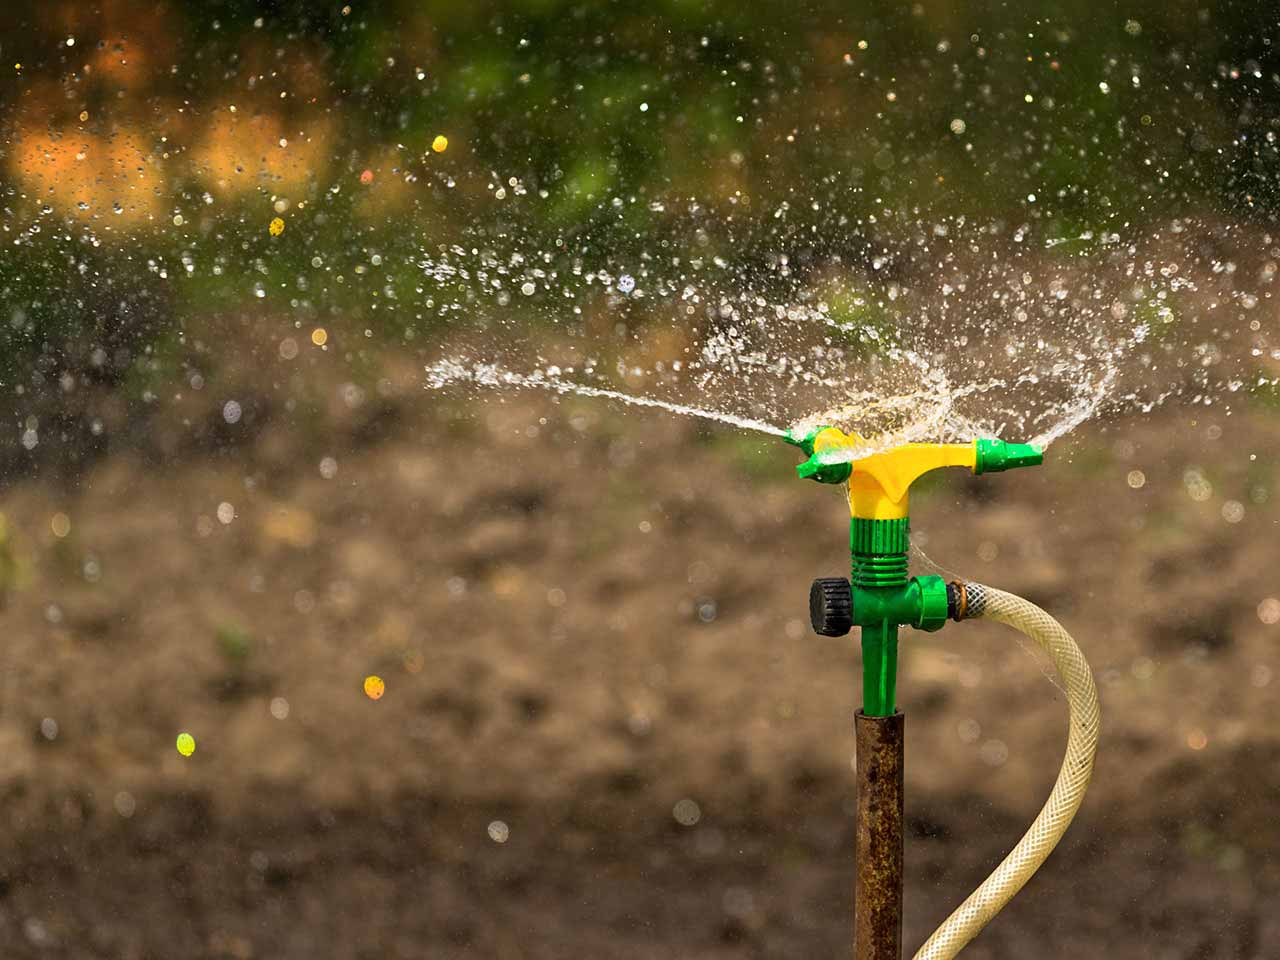 Plant irrigation system sprmnkling water over garden